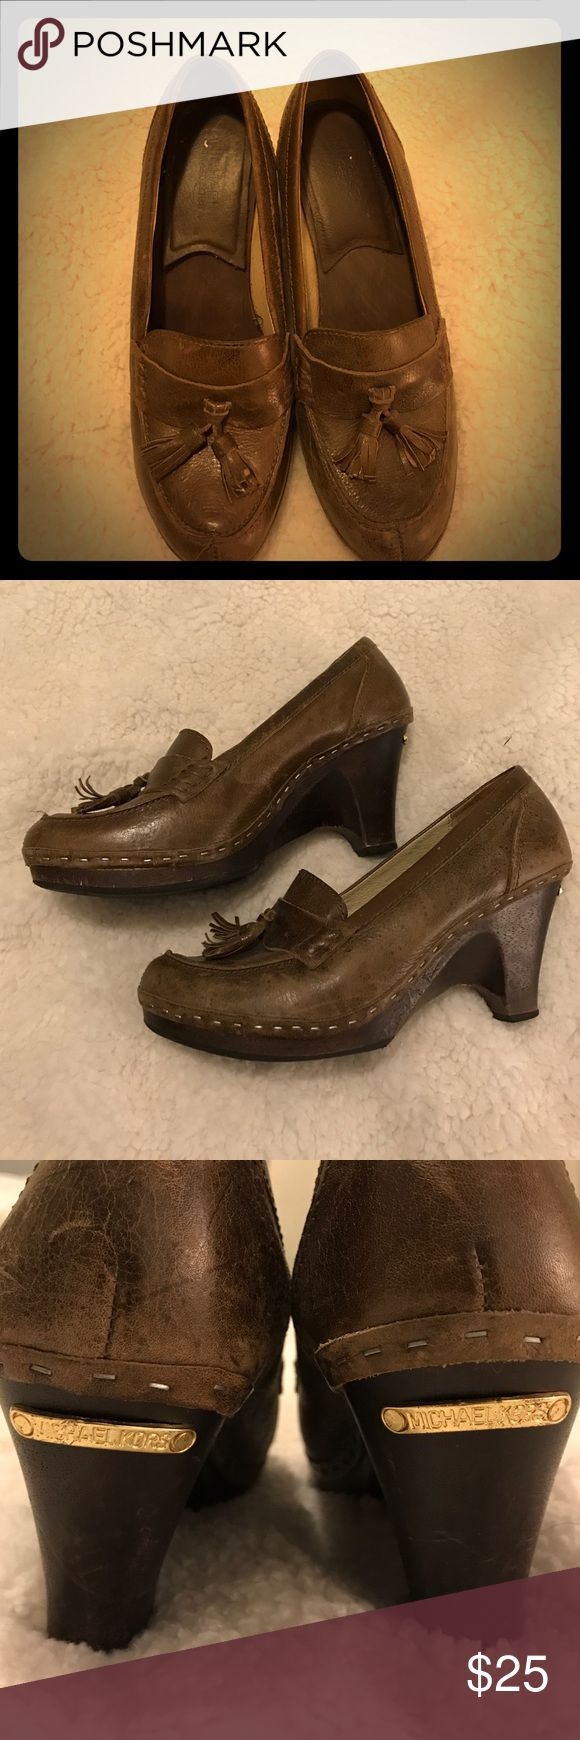 Michael Kors wedge loafers Wooden wedge heel makes these really wearable Michael Kors Shoes Wedges